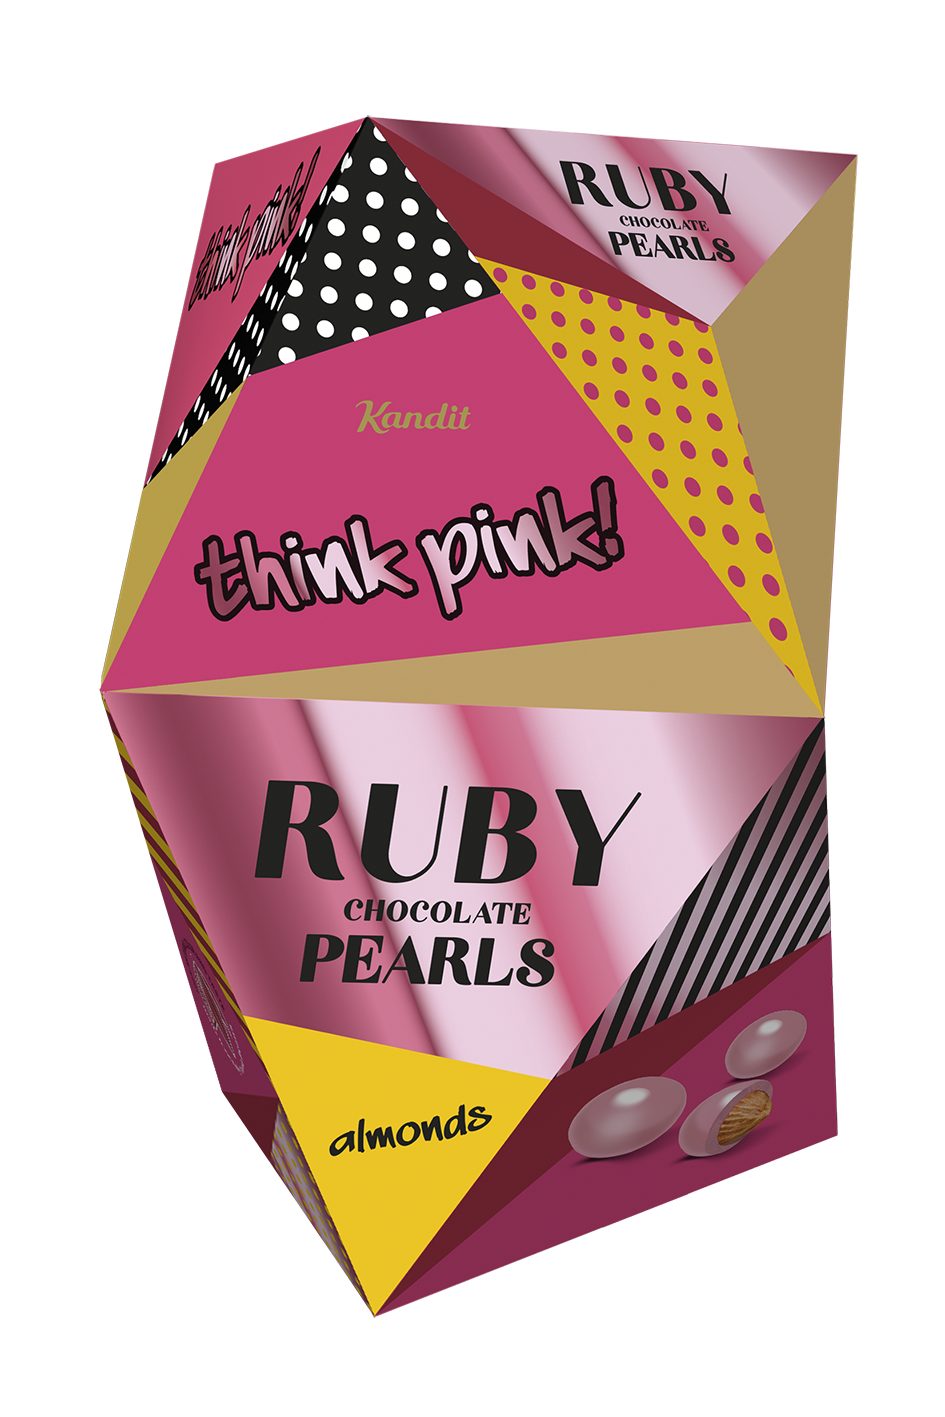 THINK PINK RUBY CHOCOLATE PEARLS ALMONDS 80 g UTZ